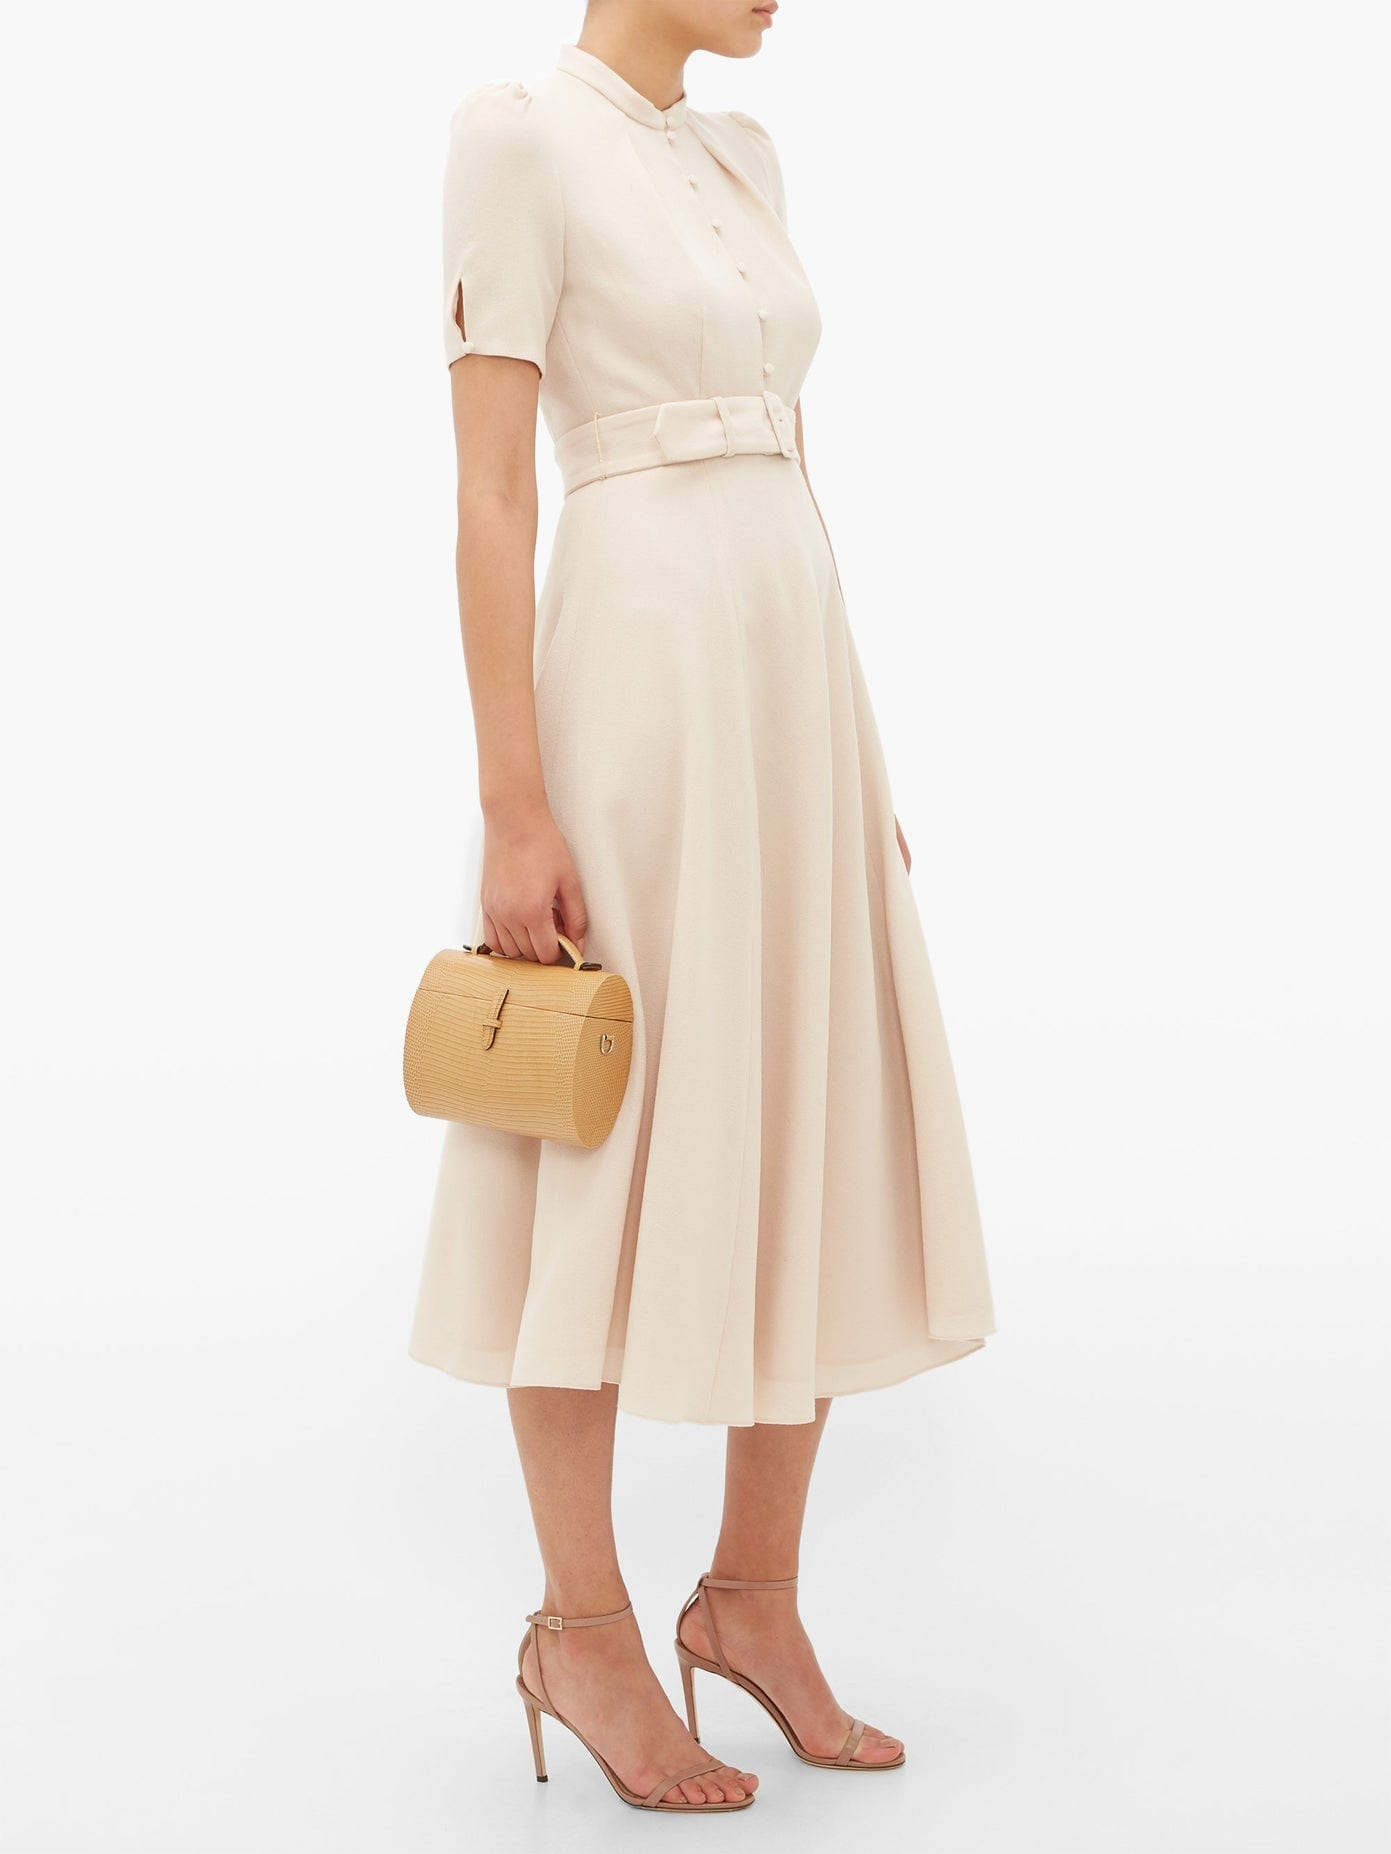 BEULAH Aahna Puff-sleeve Belted Wool Dress